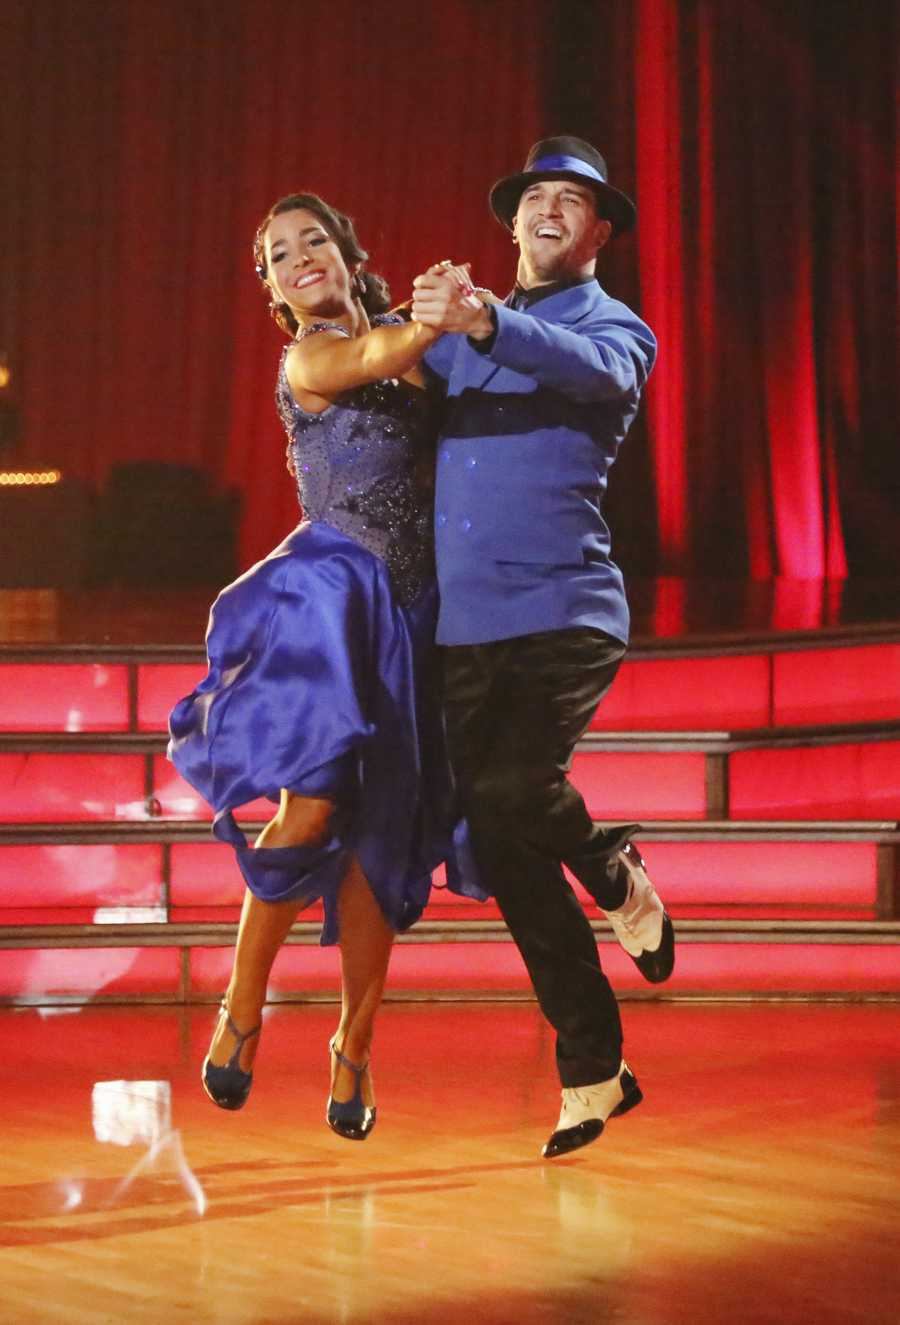 """Aly & Mark - The competition heats up on """"Dancing with the Stars"""" as the celebrities take on new dance routines and fight for survival. The couples performed a Jive, Quickstep or Jazz routine. (Photo: ABC/Adam Taylor)"""